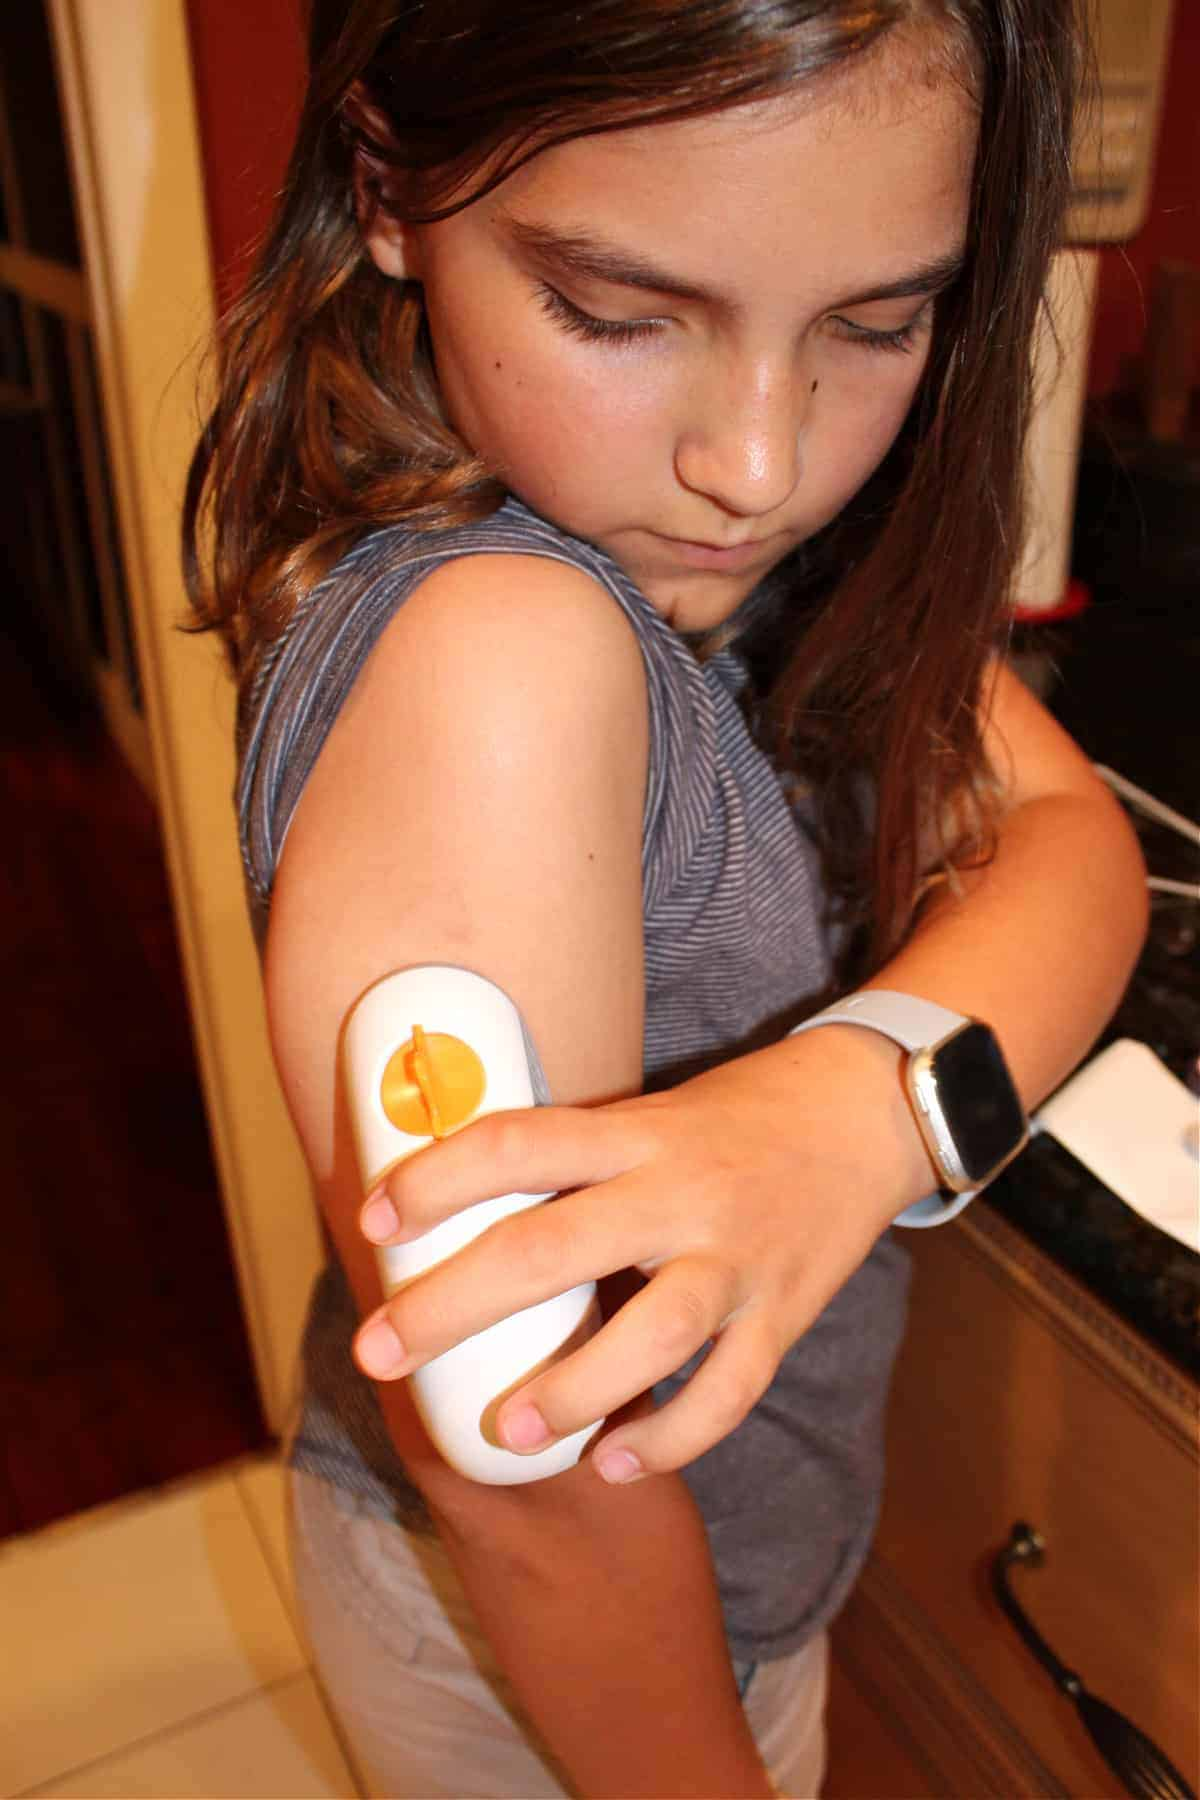 Tips For Parenting a Child With Type 1 Diabetes